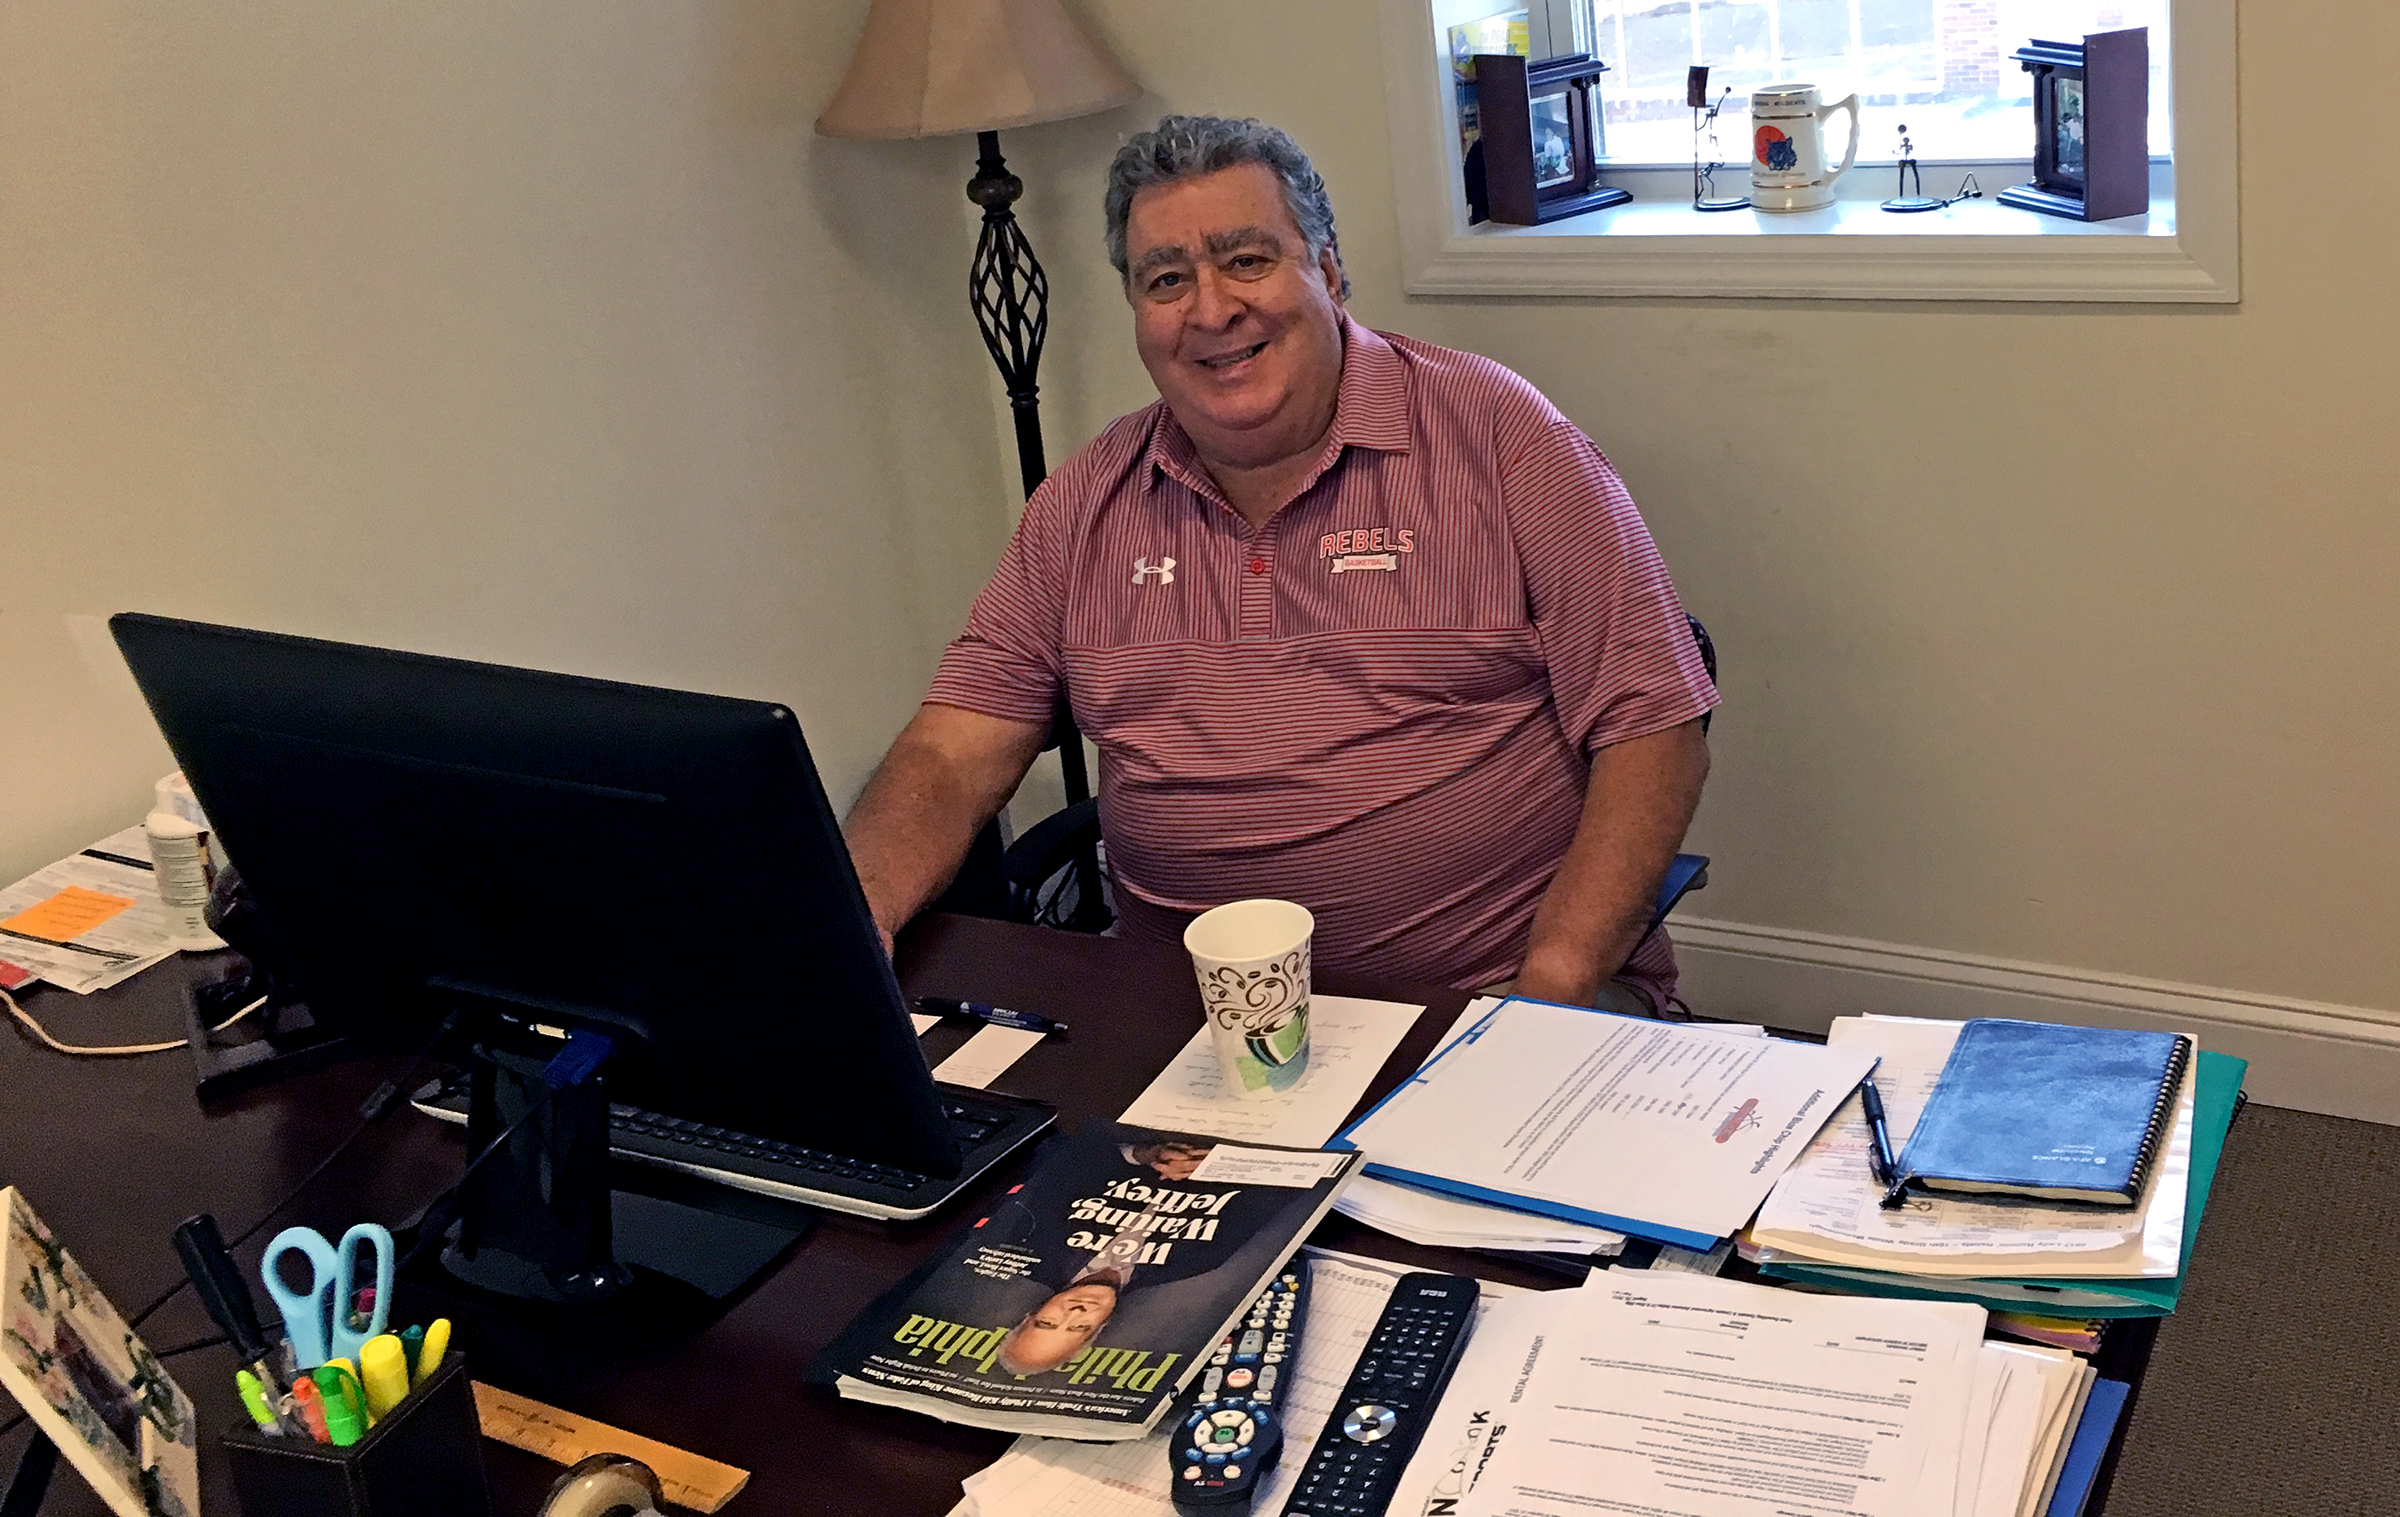 Bill McDonough in his office in Havertown. (MIKE JENSEN / Staff)